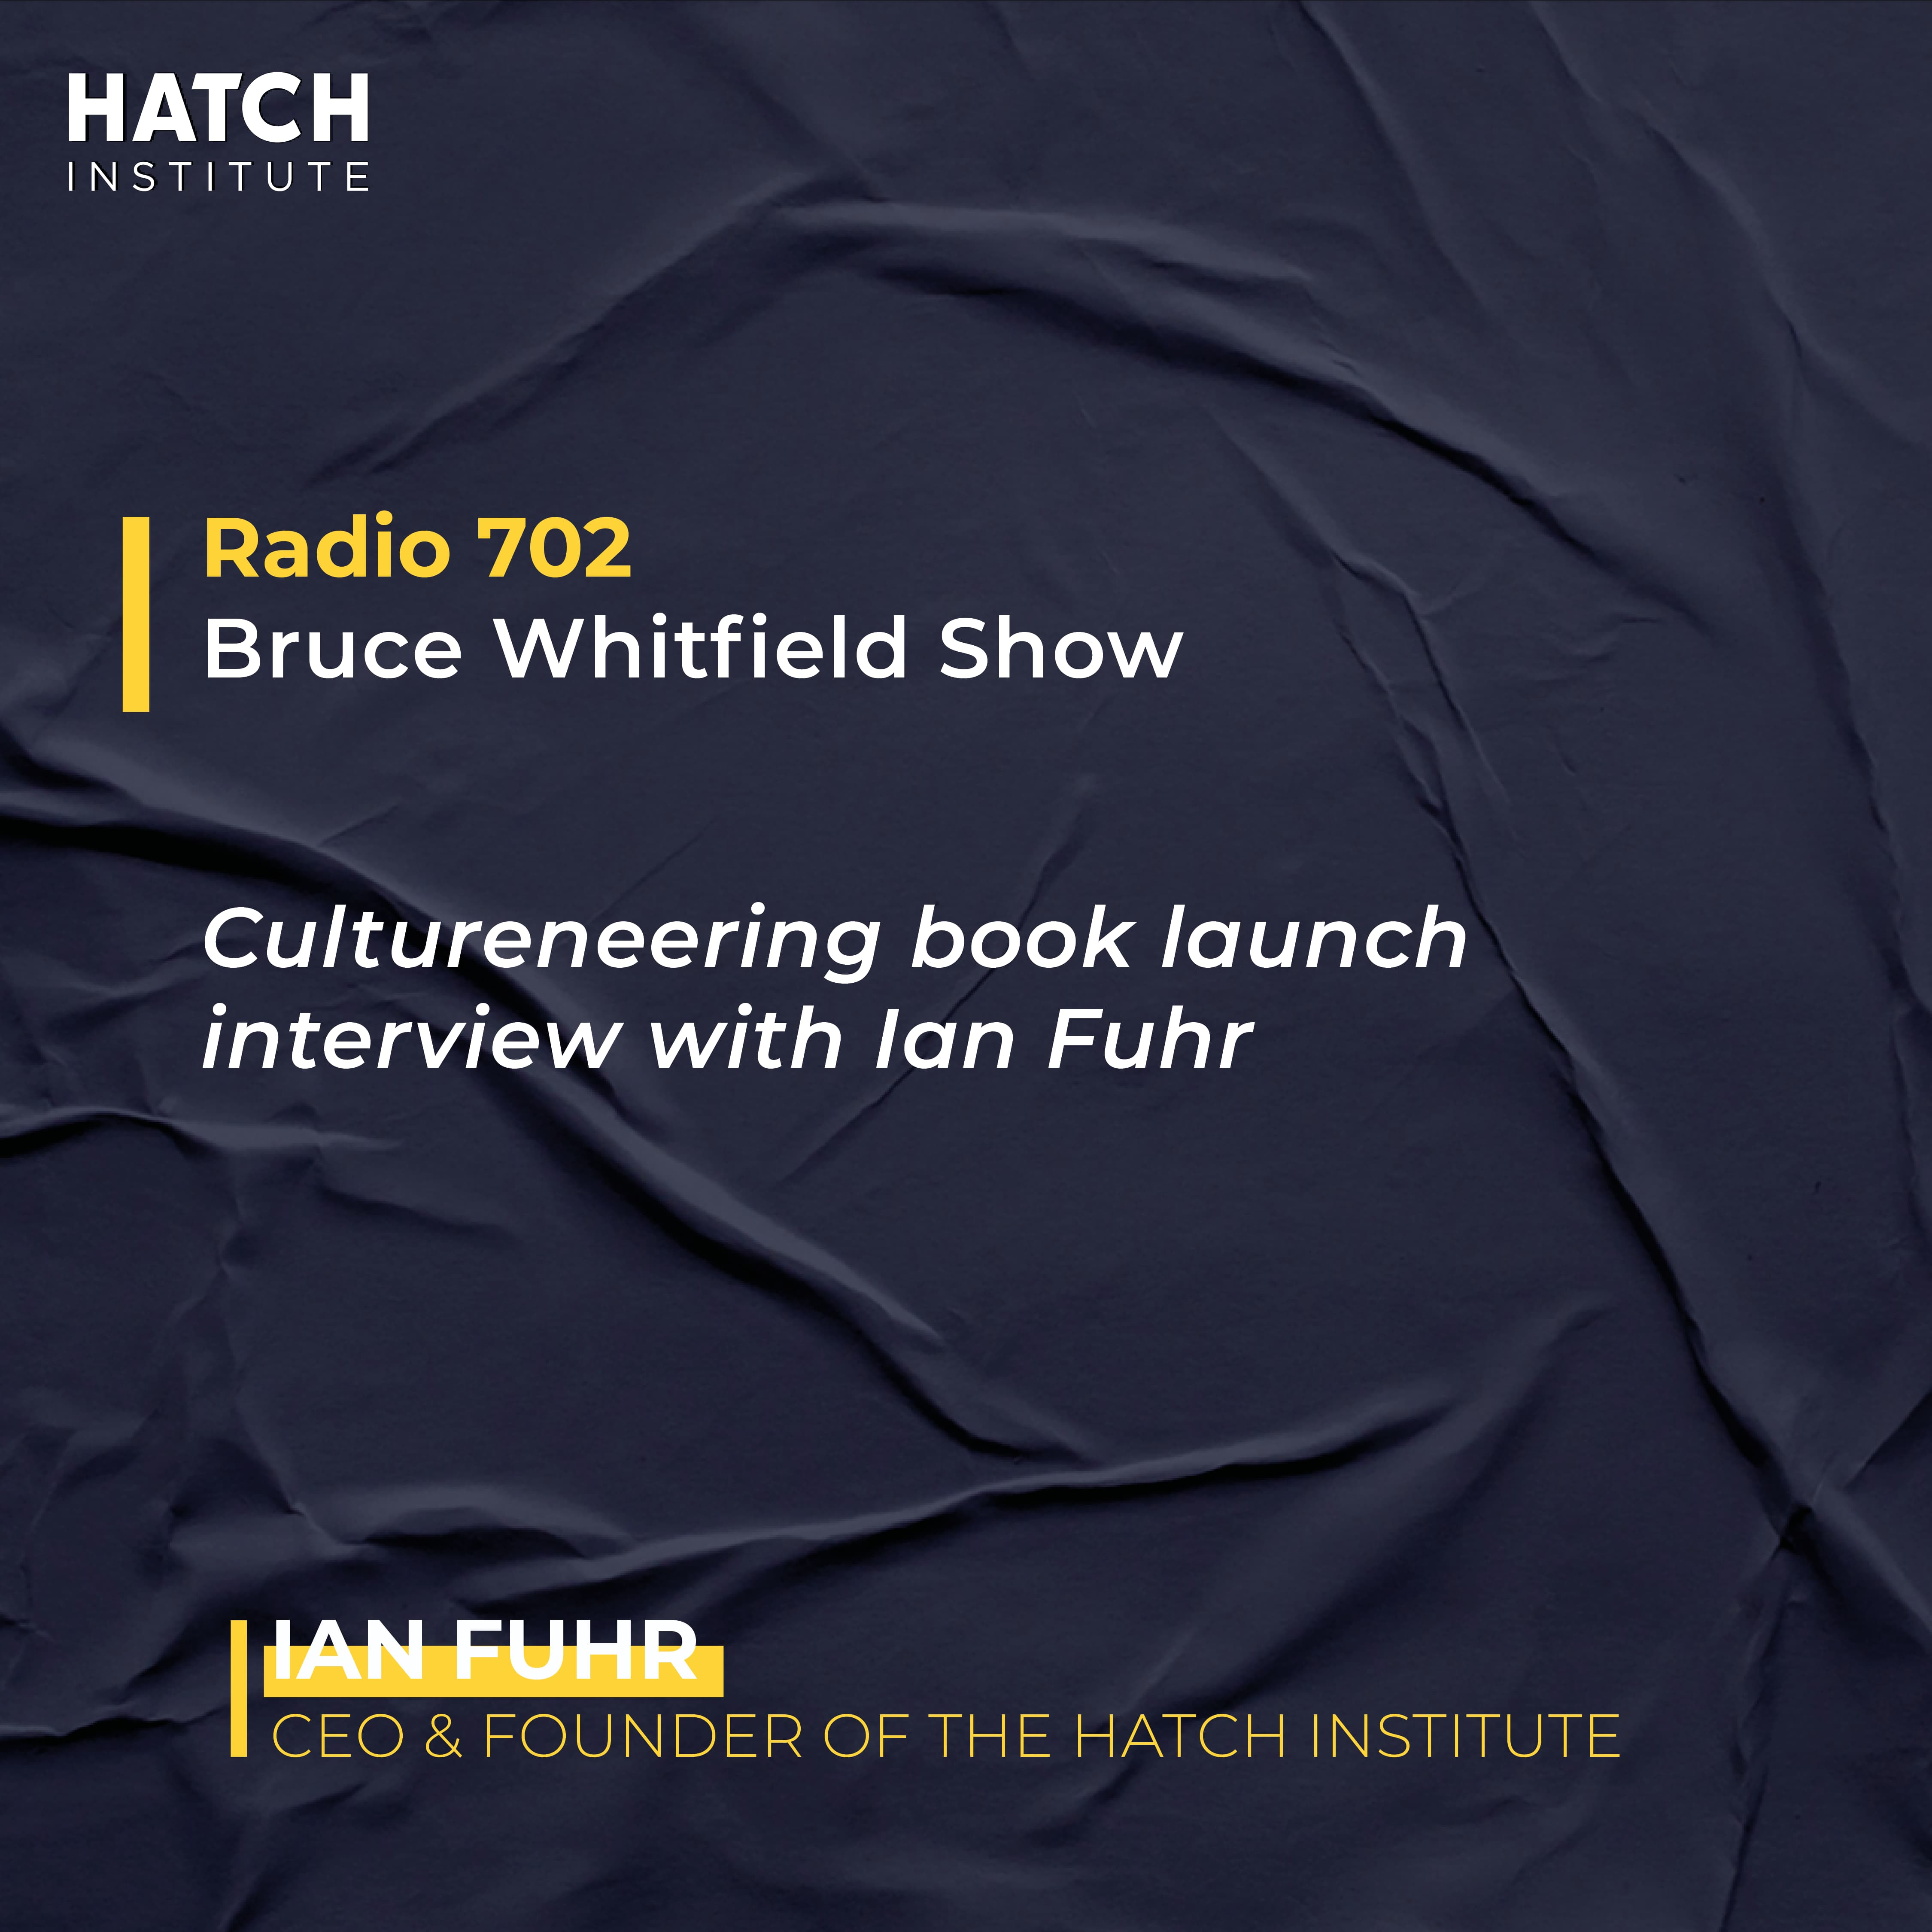 Radio 702 – Bruce Whitfield Show Interview with Ian Fuhr